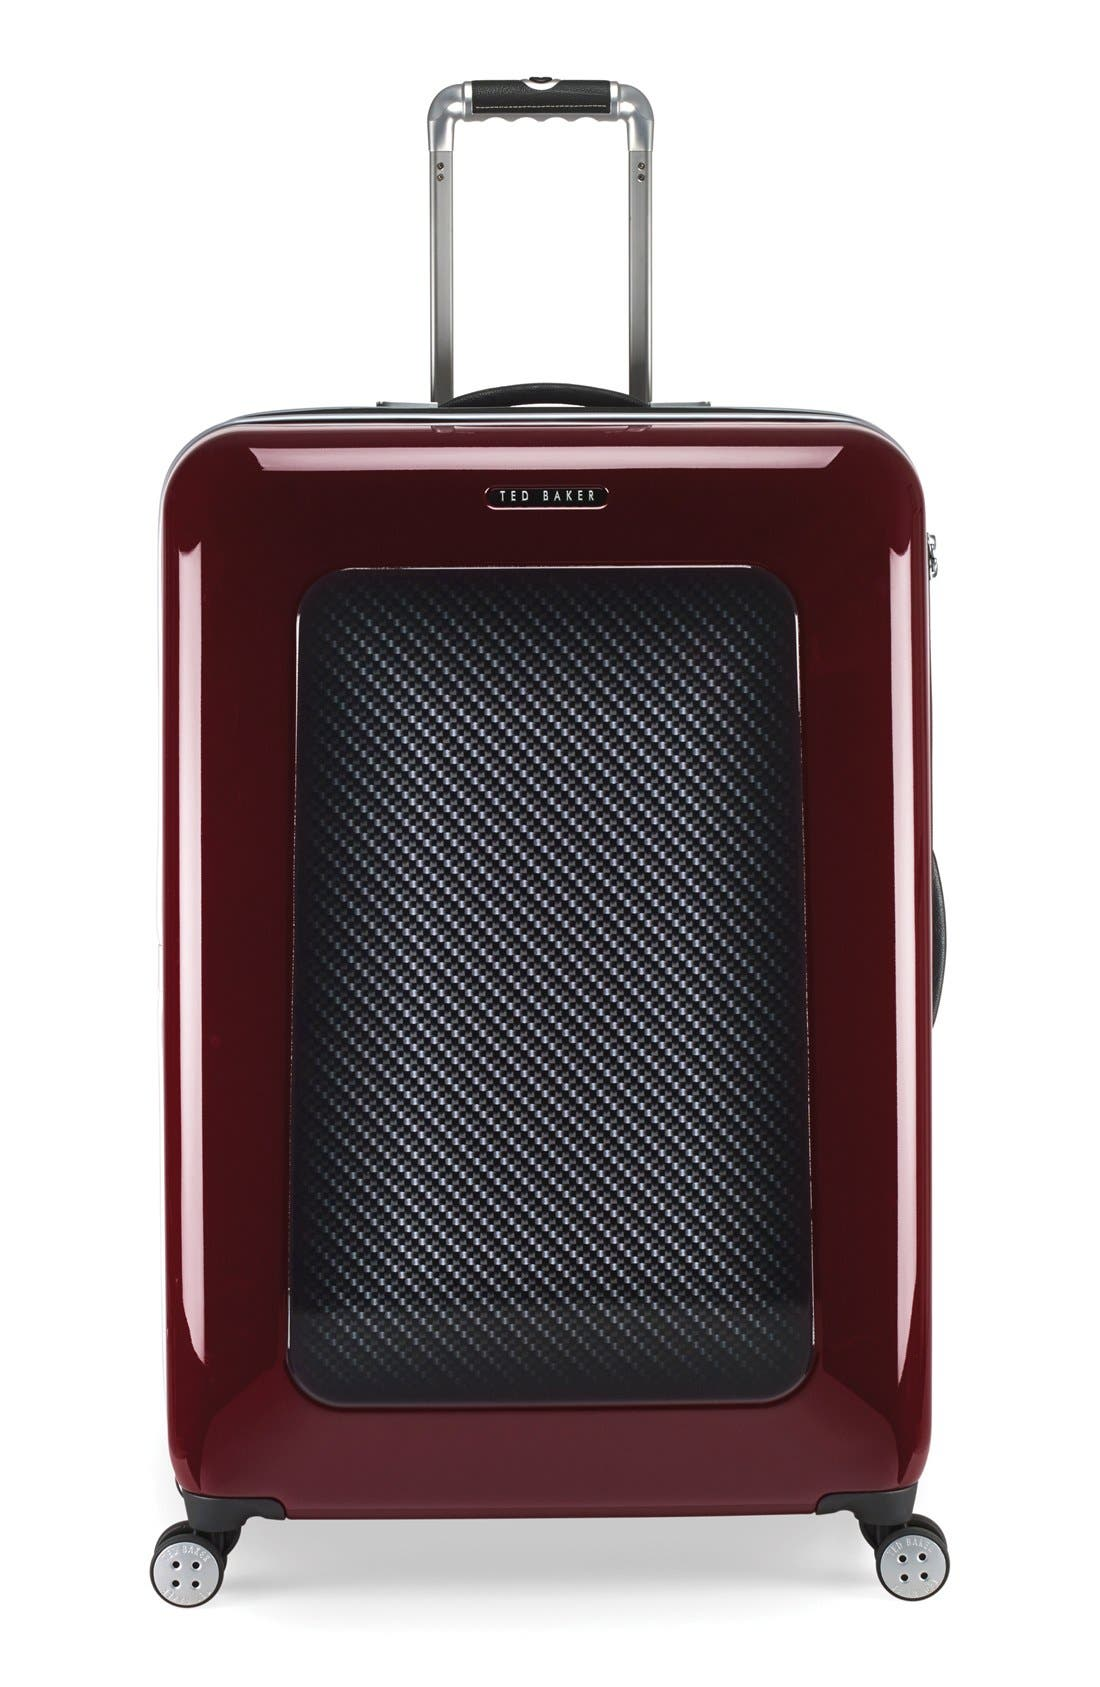 Main Image - Ted Baker London 'Large Burgundy' Four Wheel Suitcase (31 Inch)